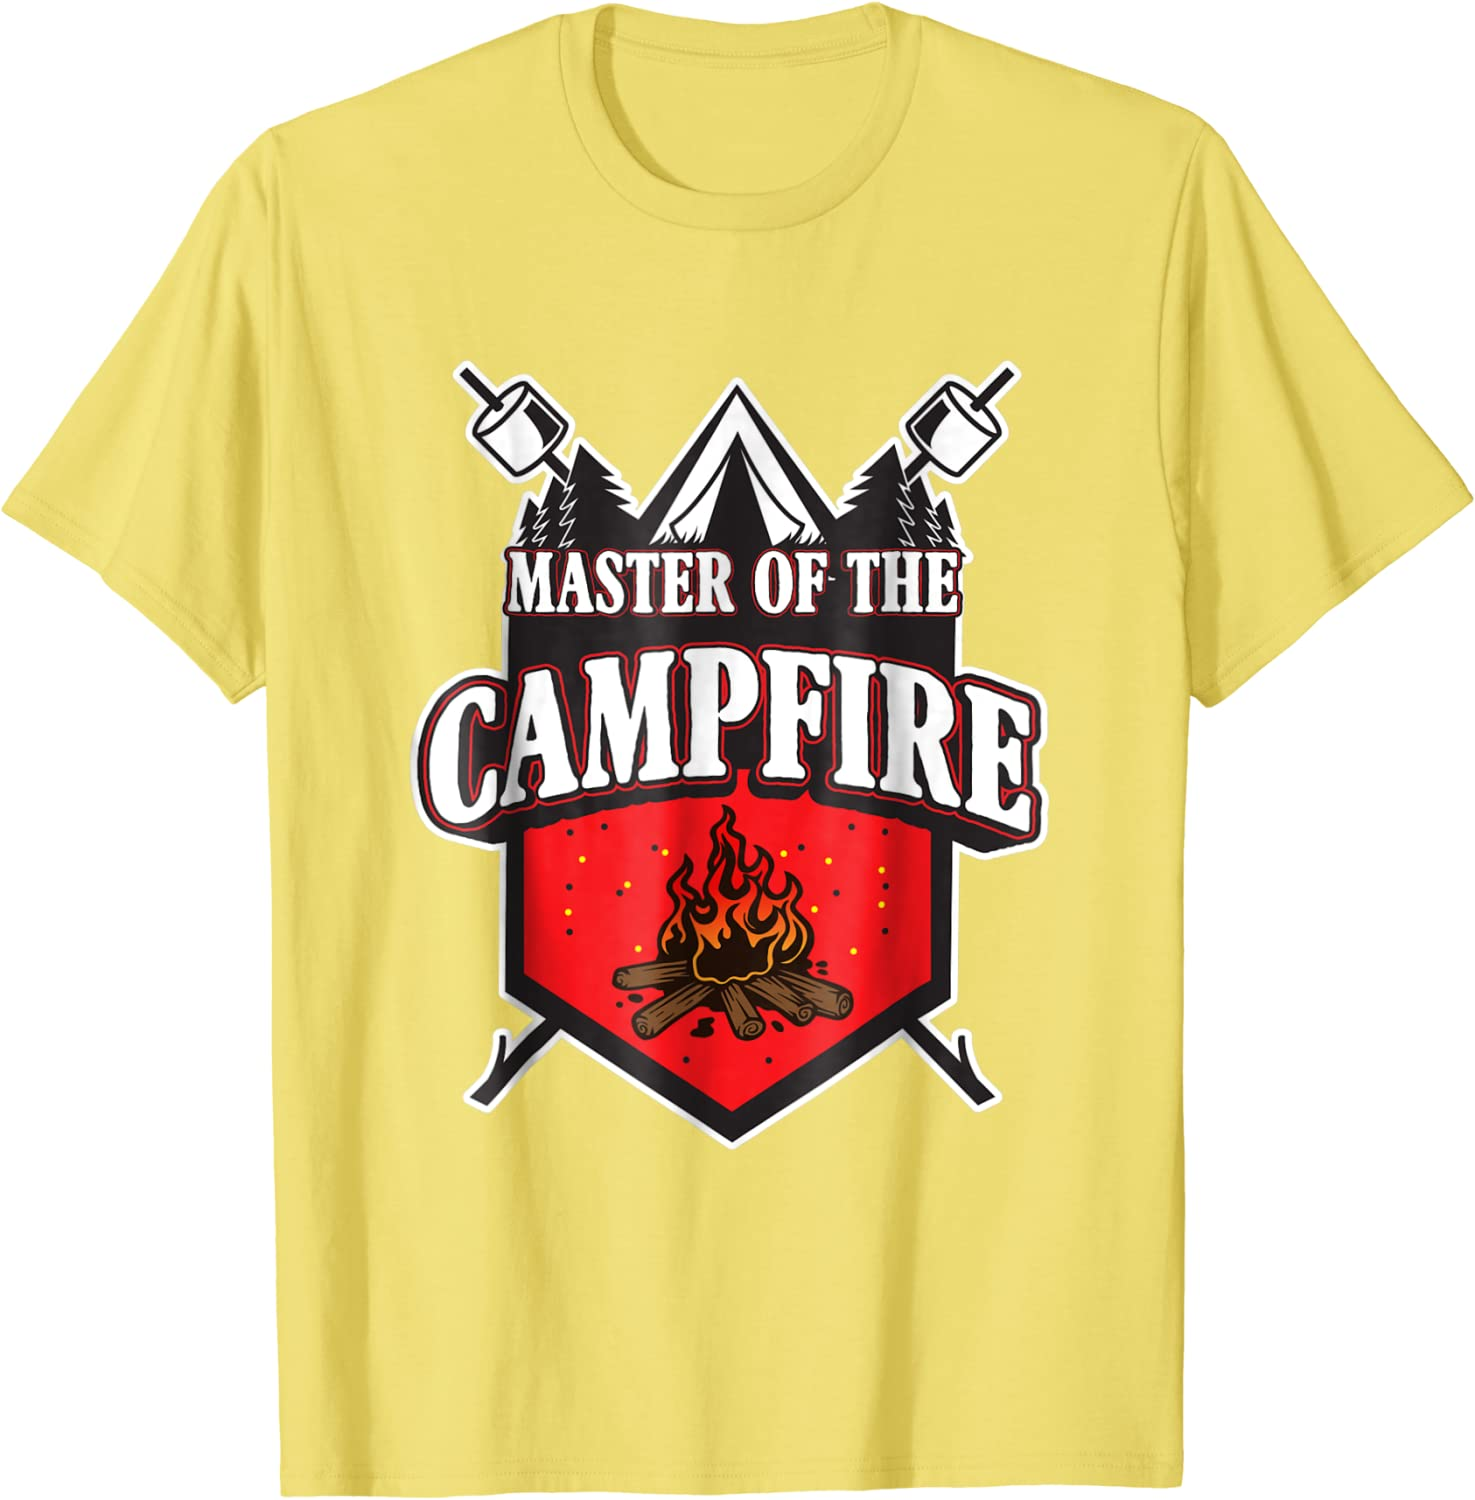 Unisex /& Women/'s Shirts Master Of The Campfire Campfire T-Shirt Cute Camping Camping Gift Camping Shirt Camping Lover